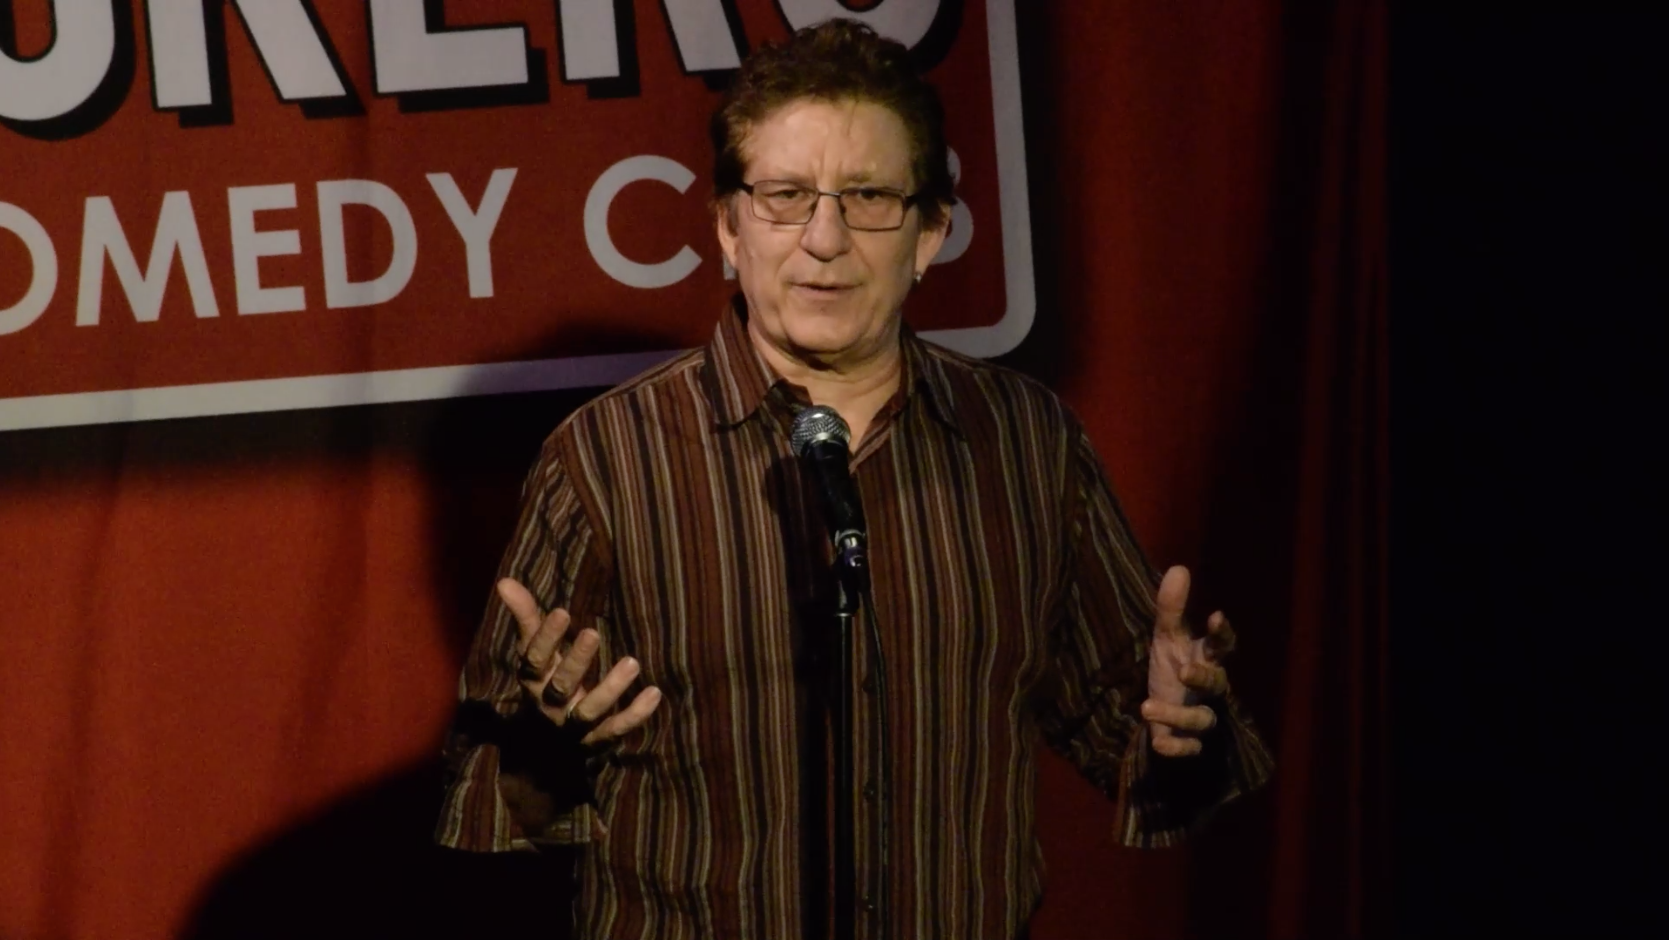 Richard Stubbs performing a stand-up comedy routine.